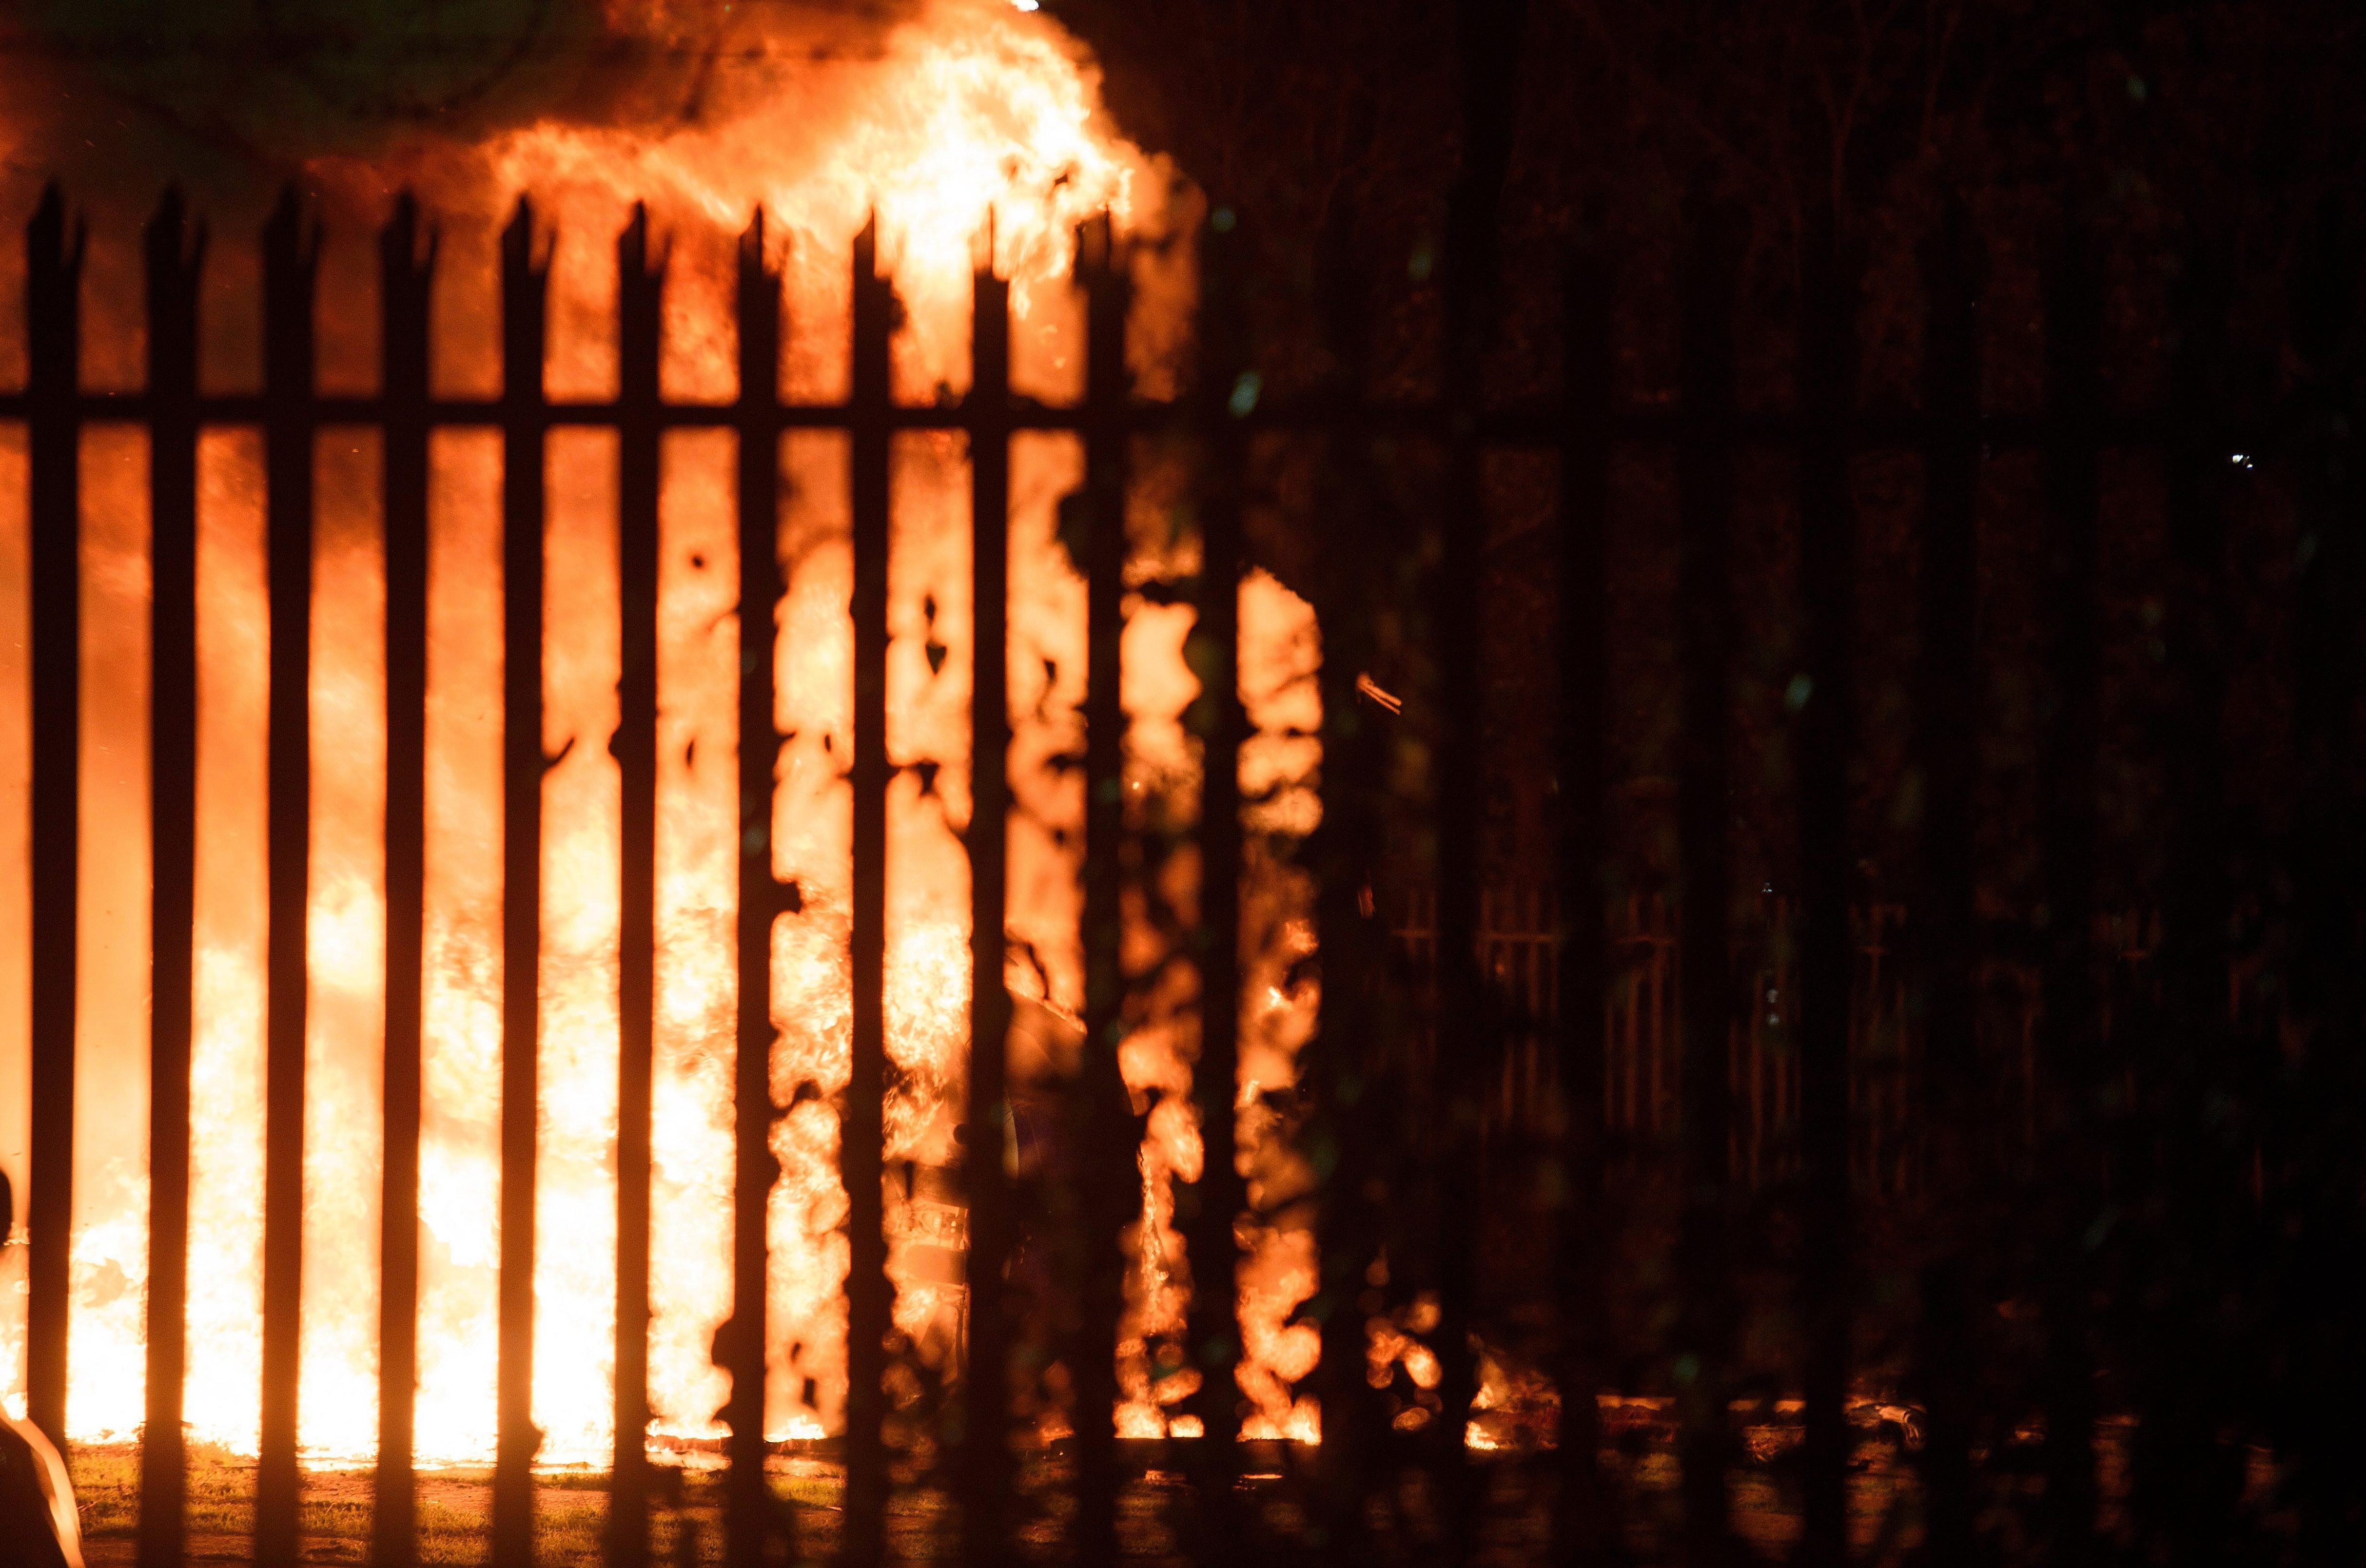 It was engulfed in flames within seconds of leaving the stadium pitch